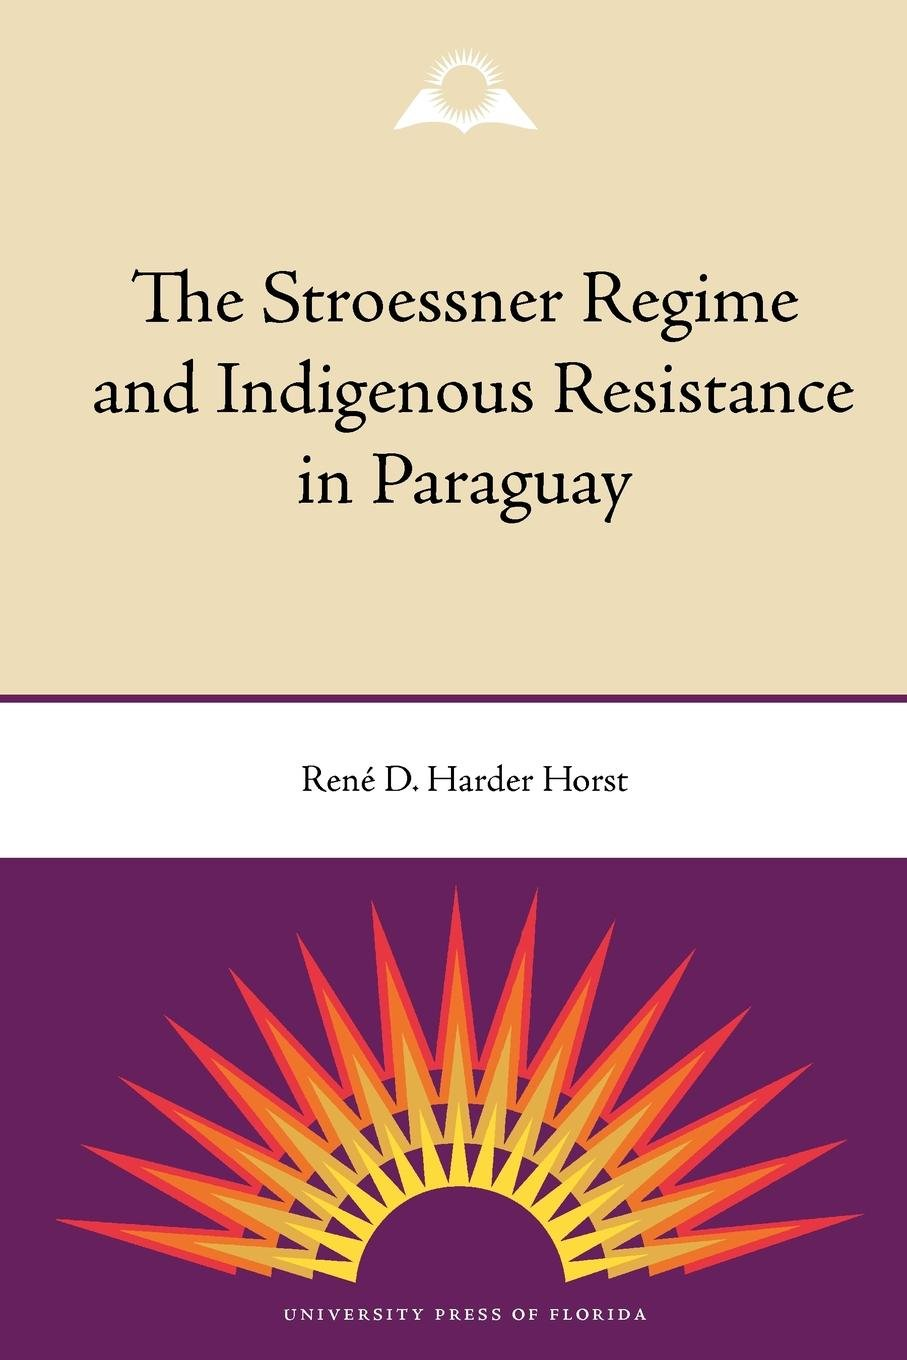 Download The Stroessner Regime and Indigenous Resistance in Paraguay pdf